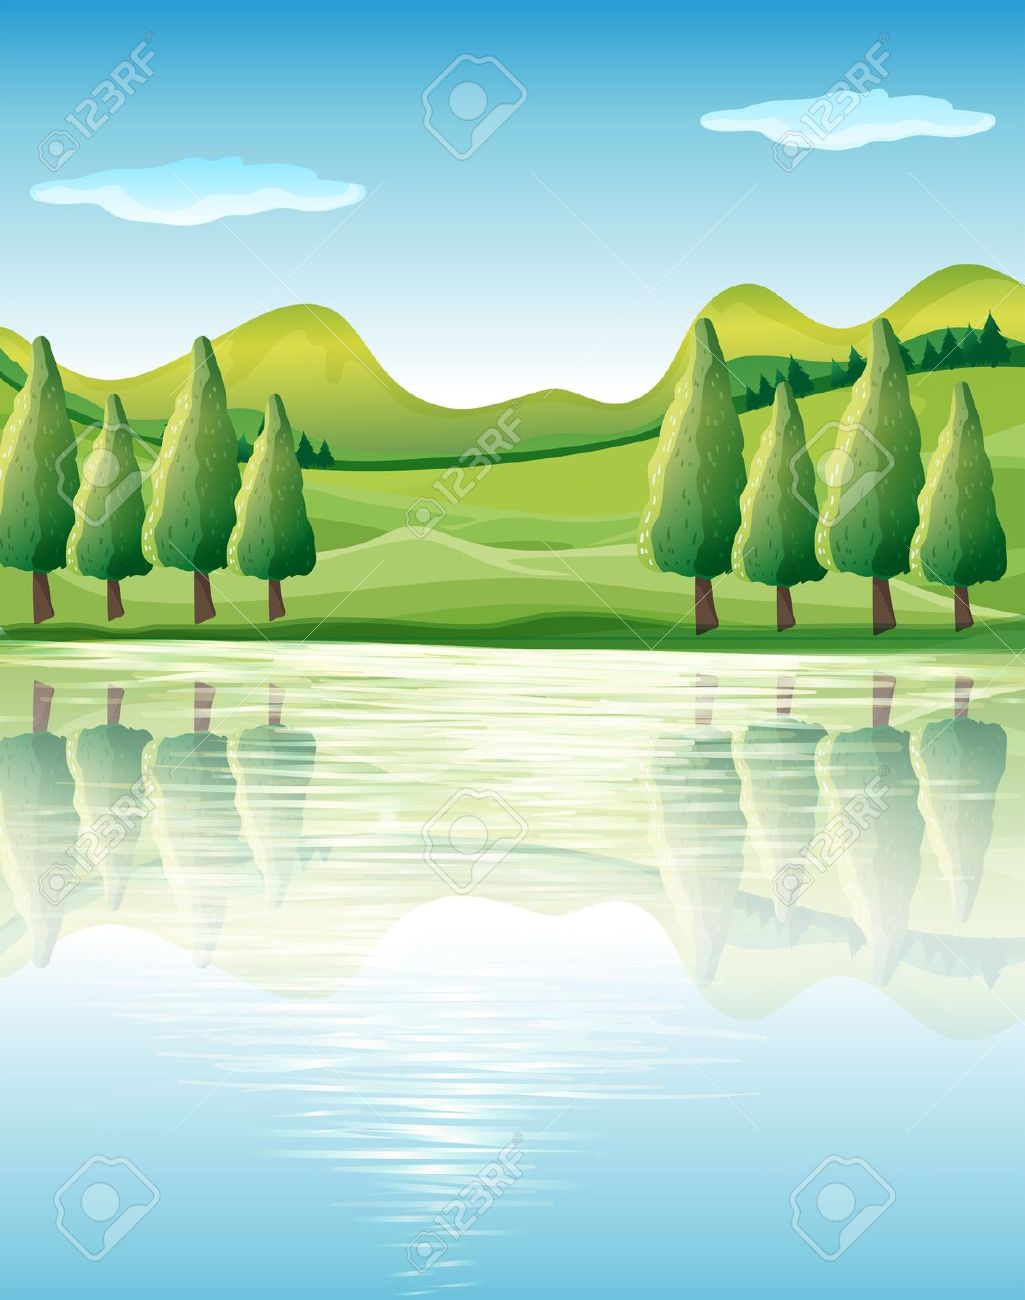 Illustration Of The Beauty Of Nature Royalty Free Cliparts.